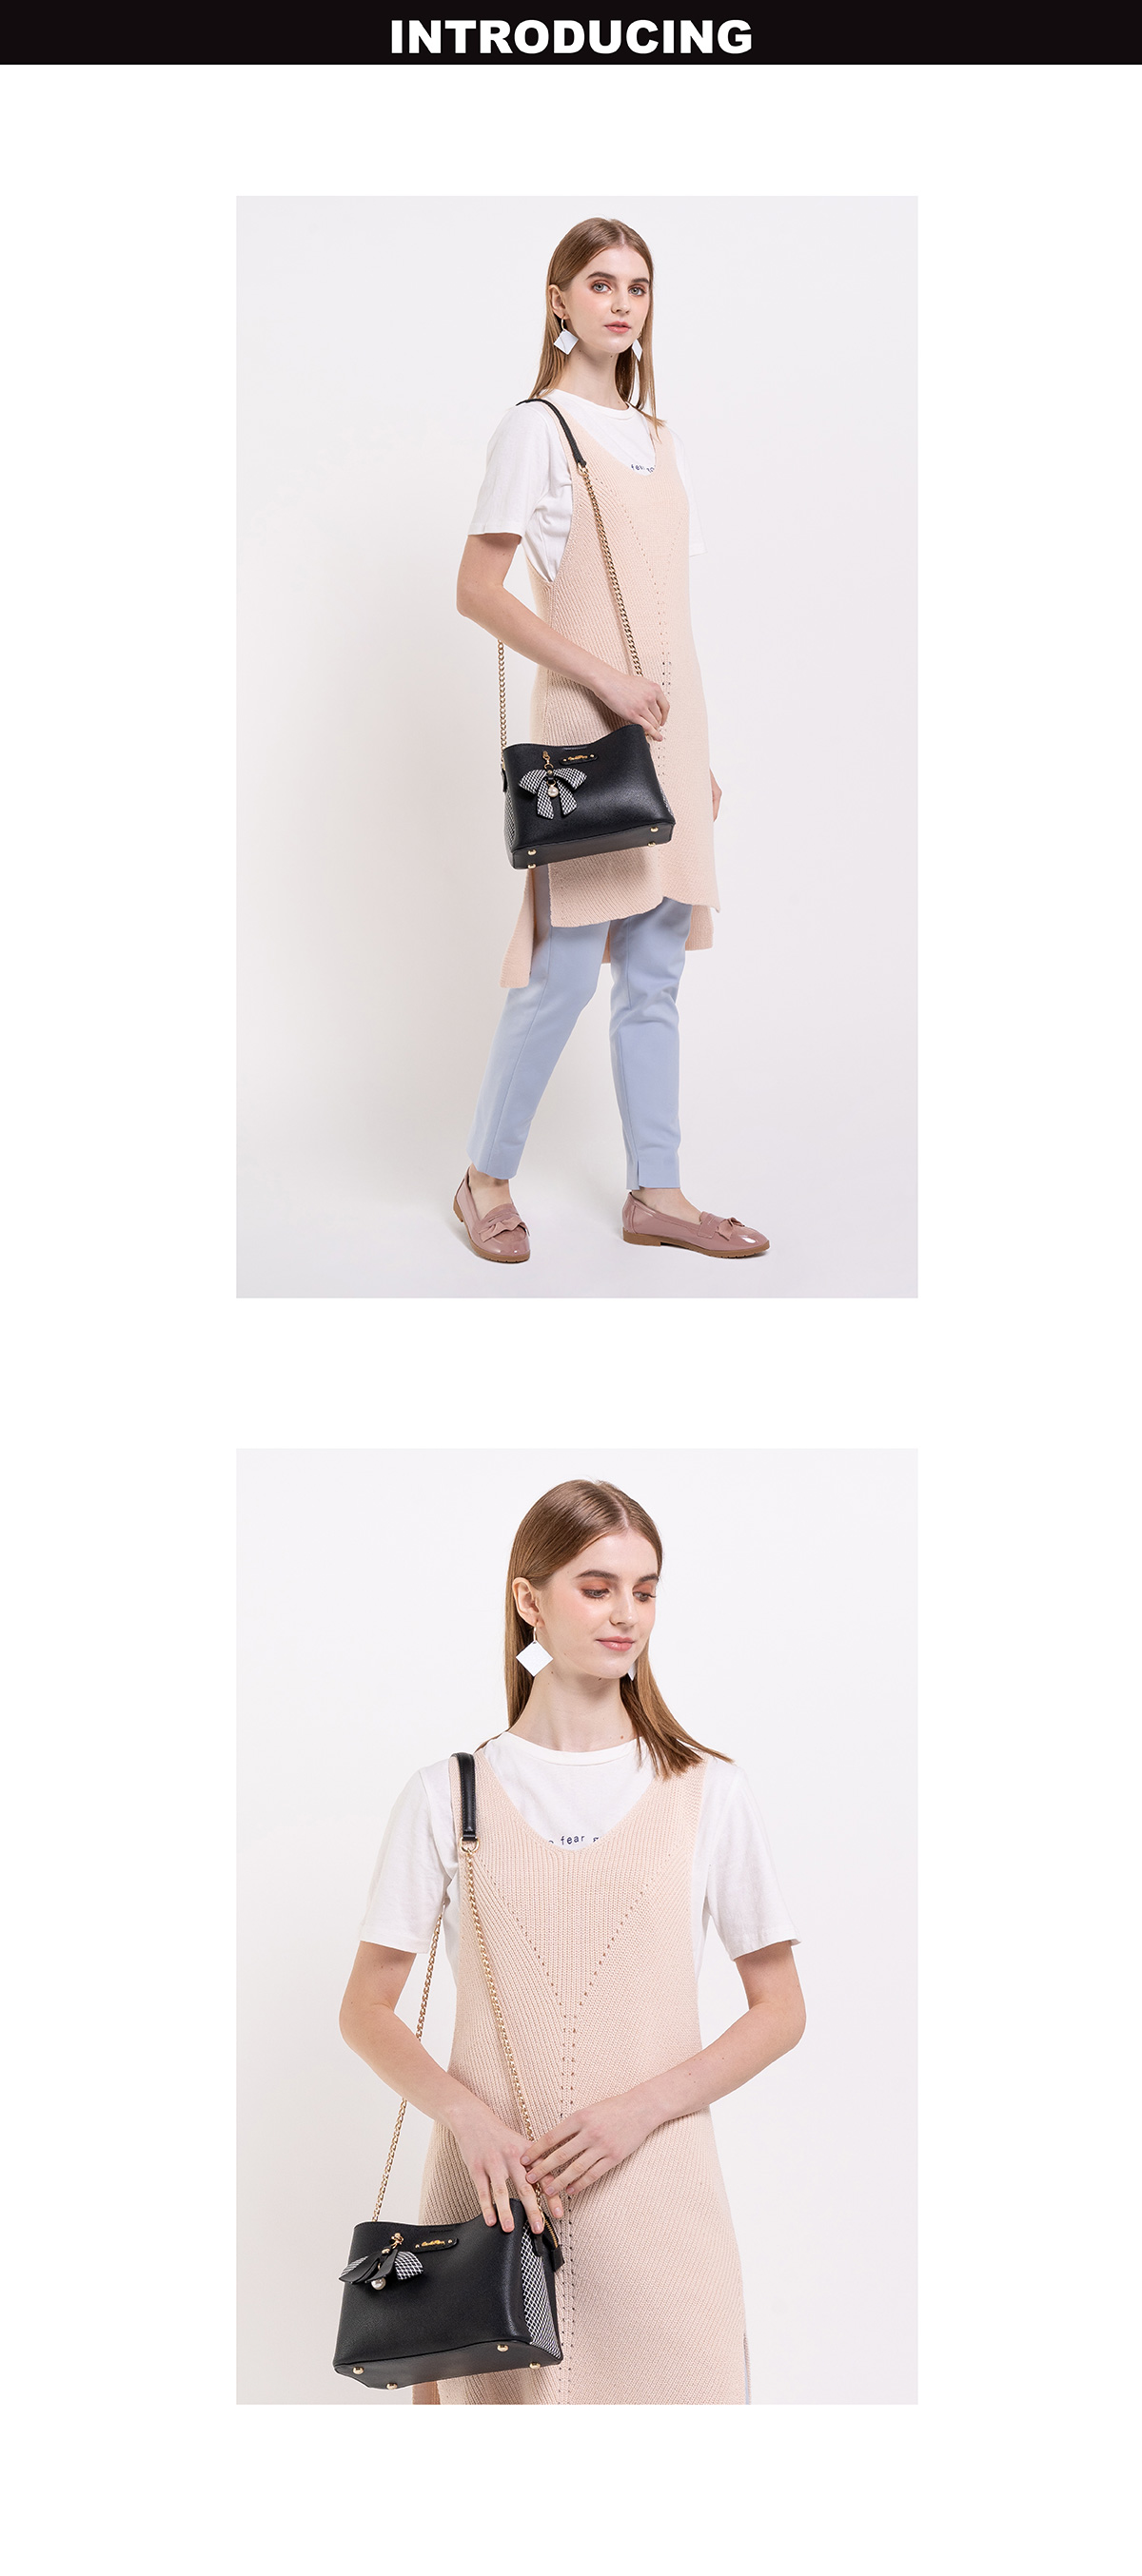 0304924G 001 08 01 - What a Mesh Chain Link Cross Body